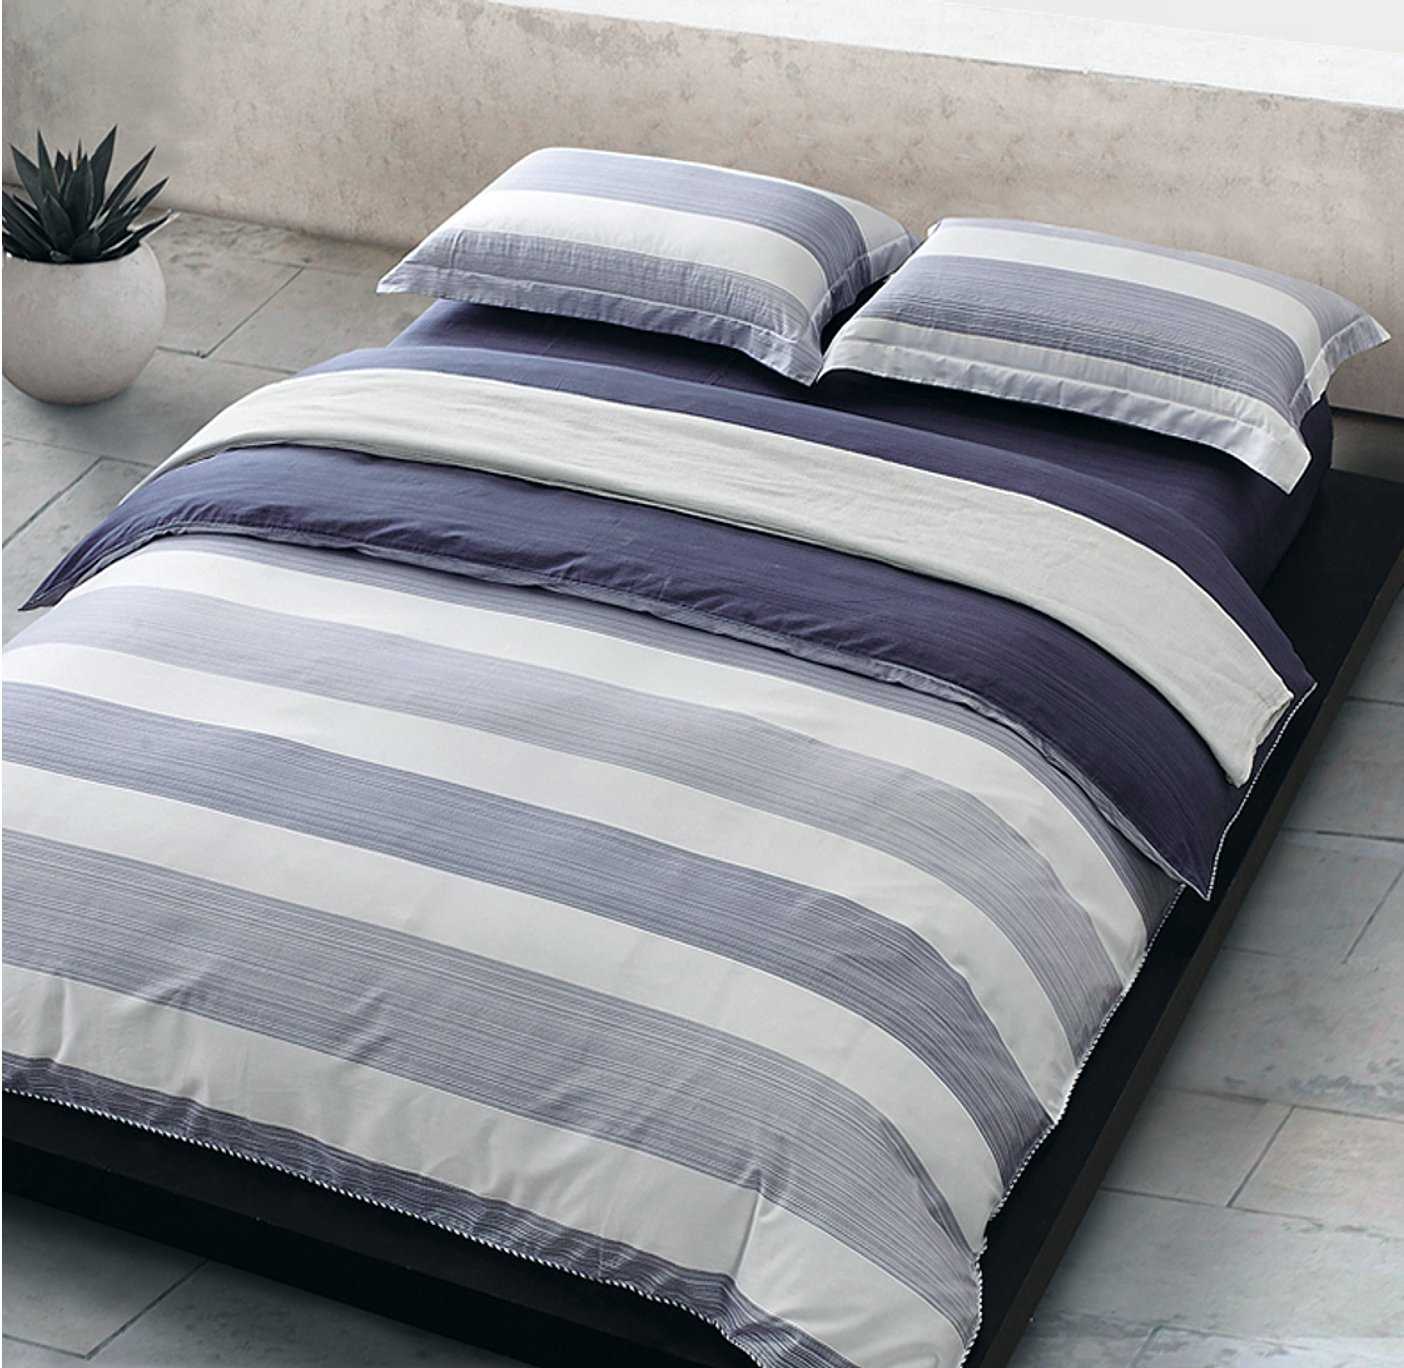 amazoncom cabana stripe modern duvet cover 100 cotton twill bedding set geometric white and navy distressed rugby stripes print in dusty blue shades - Navy Bedding